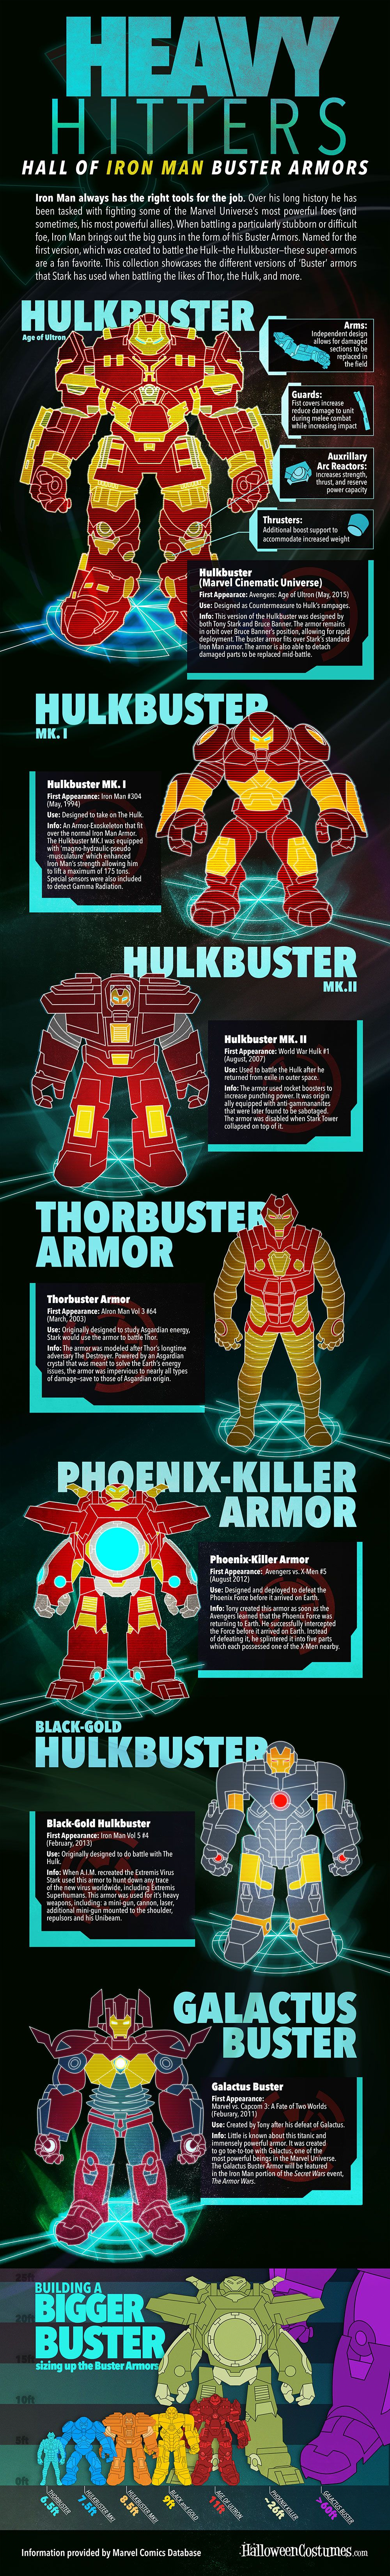 Heavy Hitters Hall of Iron Man Buster Armors